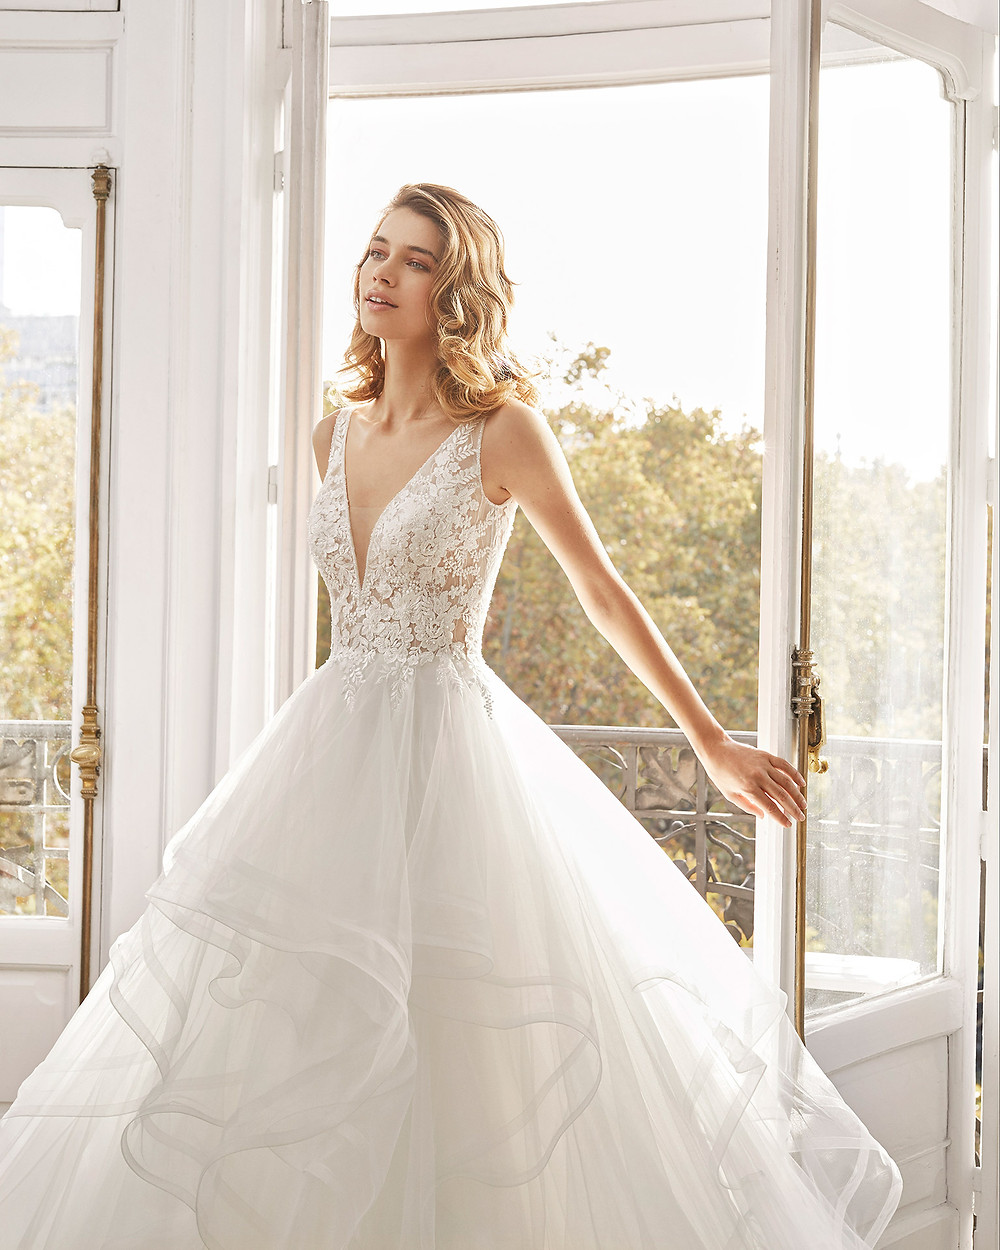 An Aire Barcelona 2020 lace and tulle ball gown wedding dress with a layered ruffle skirt